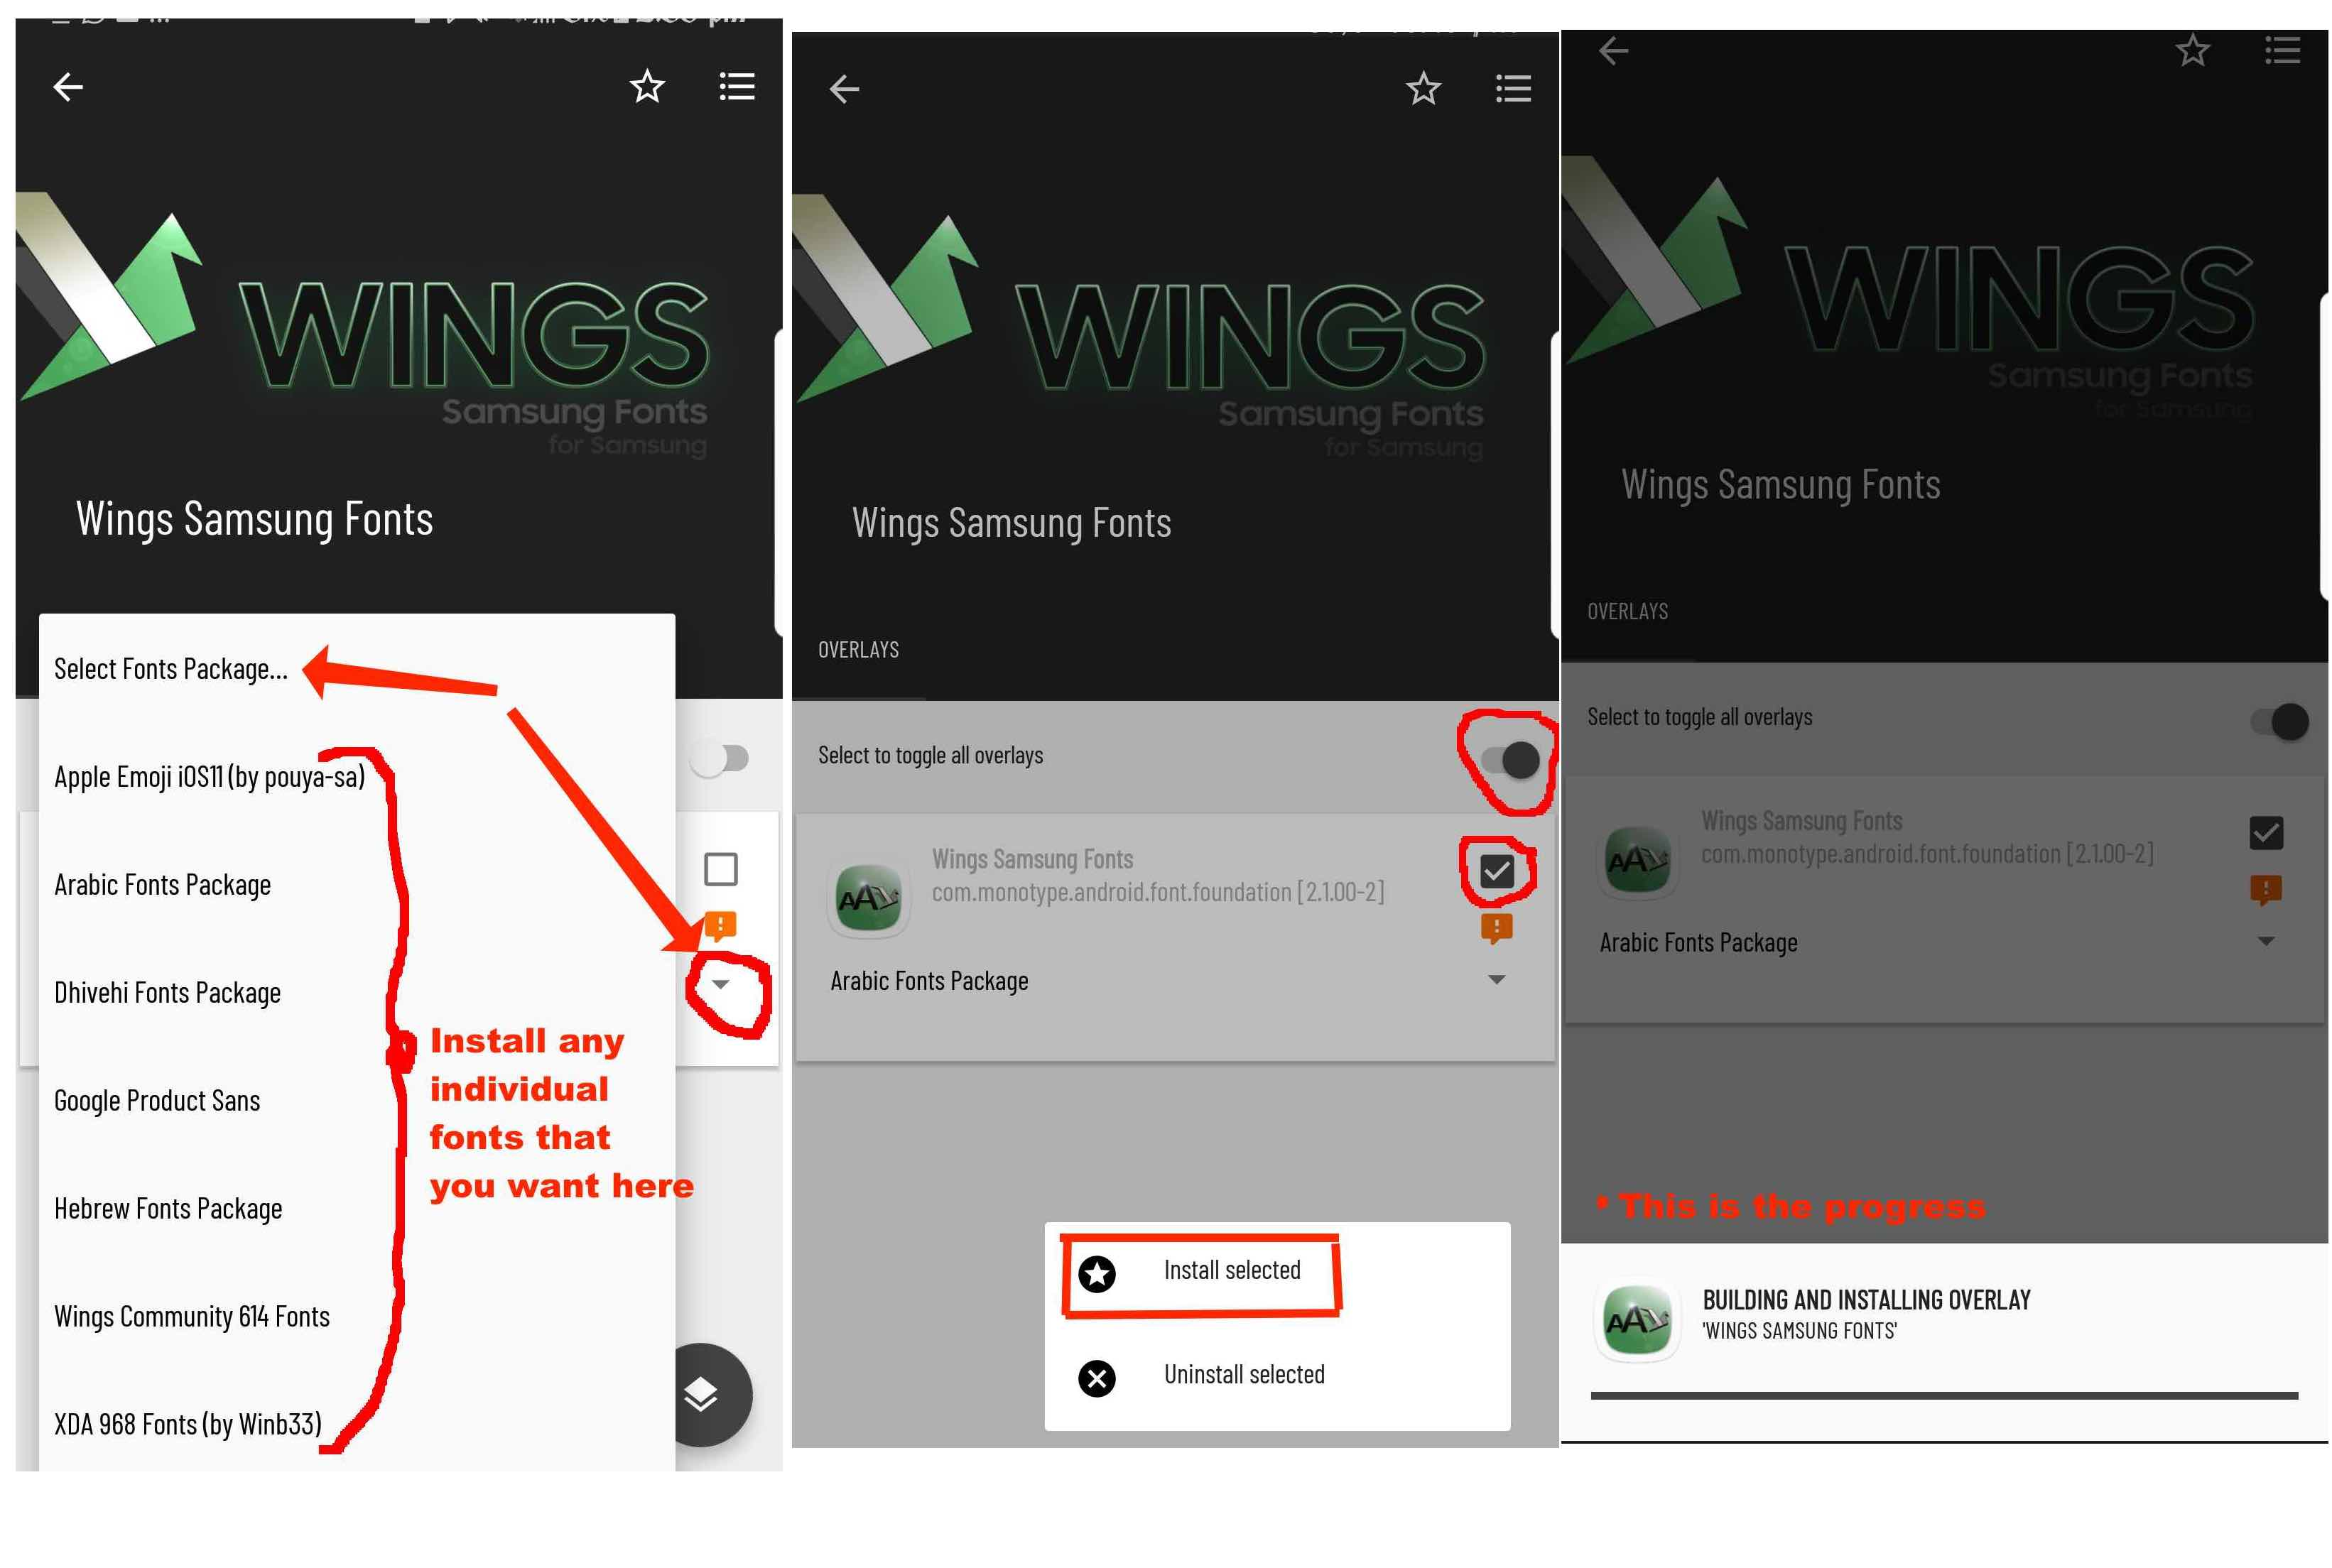 Wings Samsung Fonts installation Guide for Android OS V7 and newer